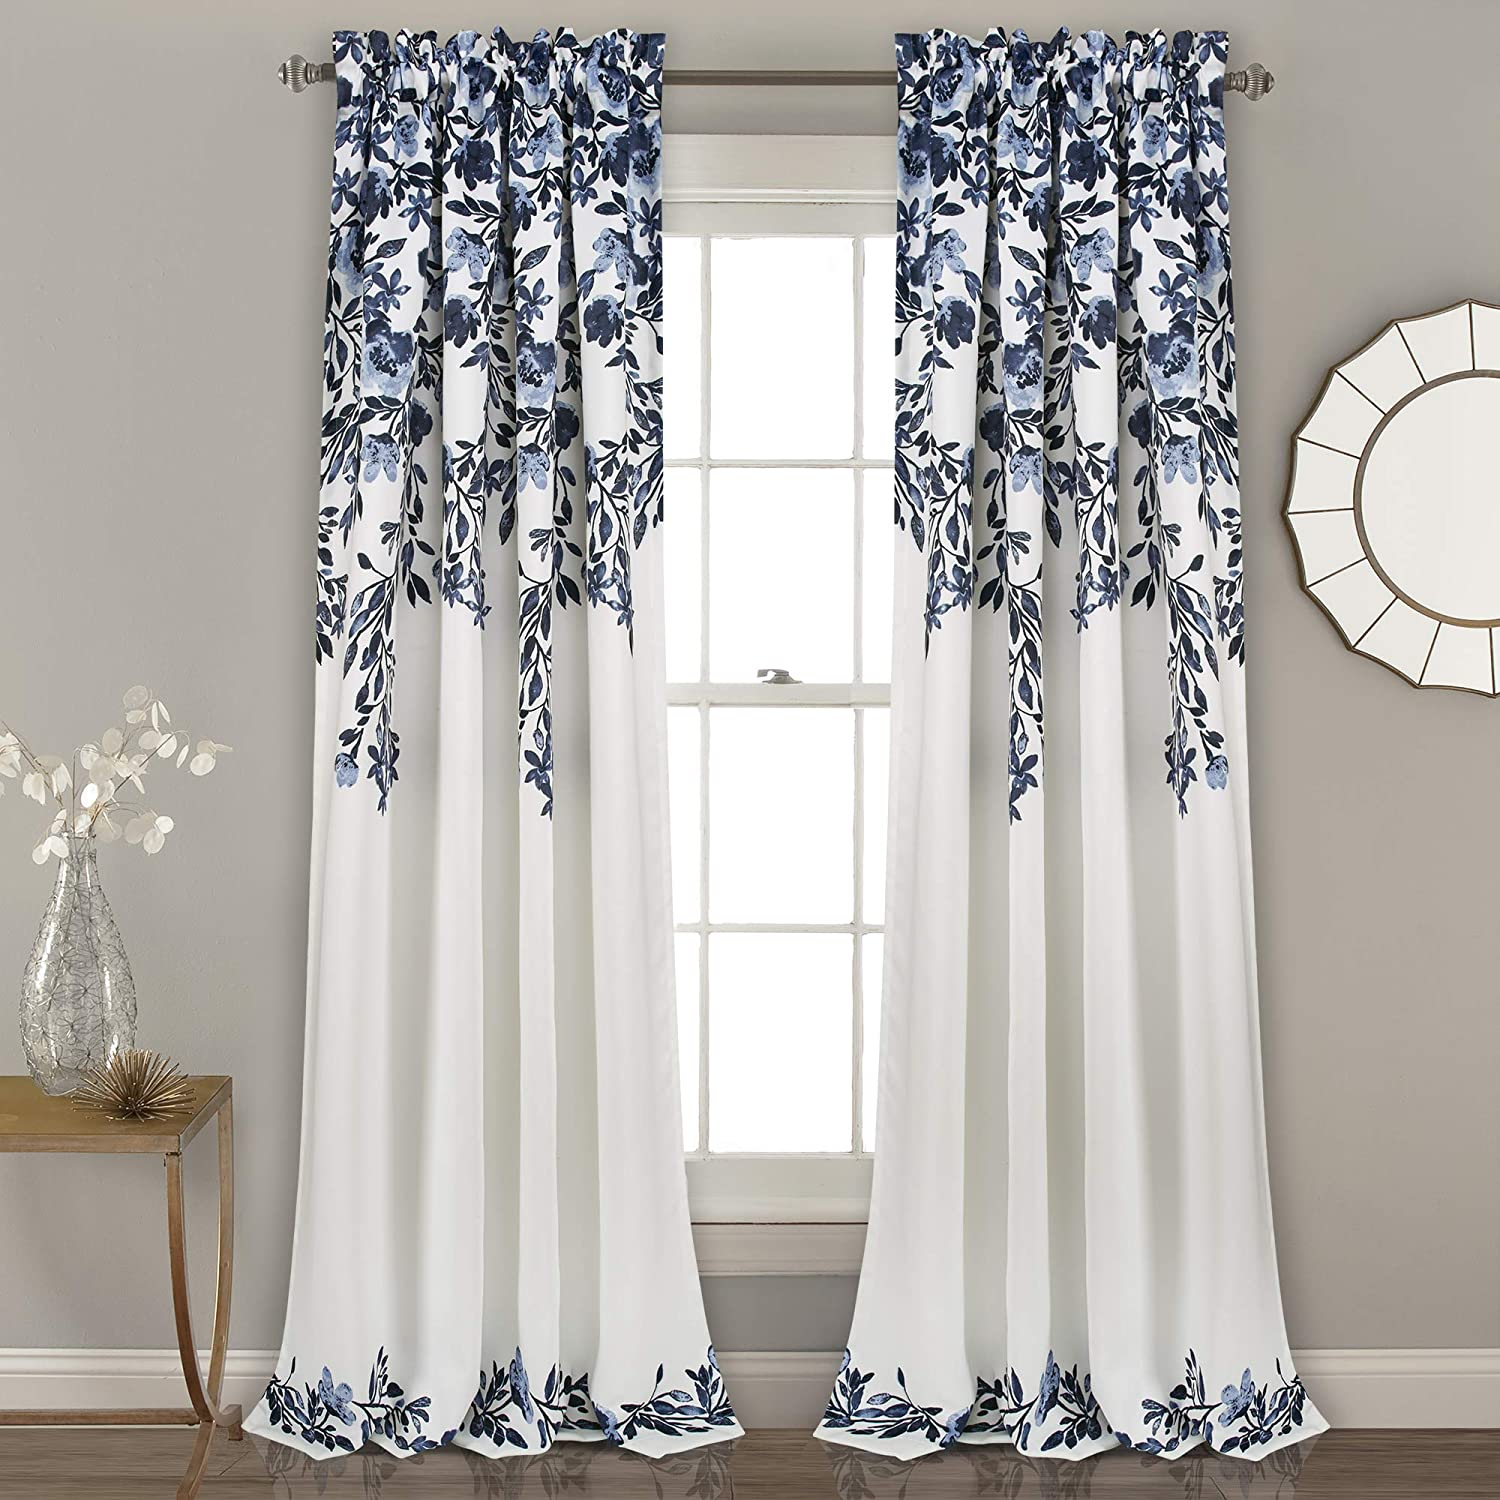 "Lush Decor Tanisha Curtains | Room Darkening Floral Vine Print Design Window Panel Set (Pair), 84"" x 52"" -Navy and White, Navy & White"